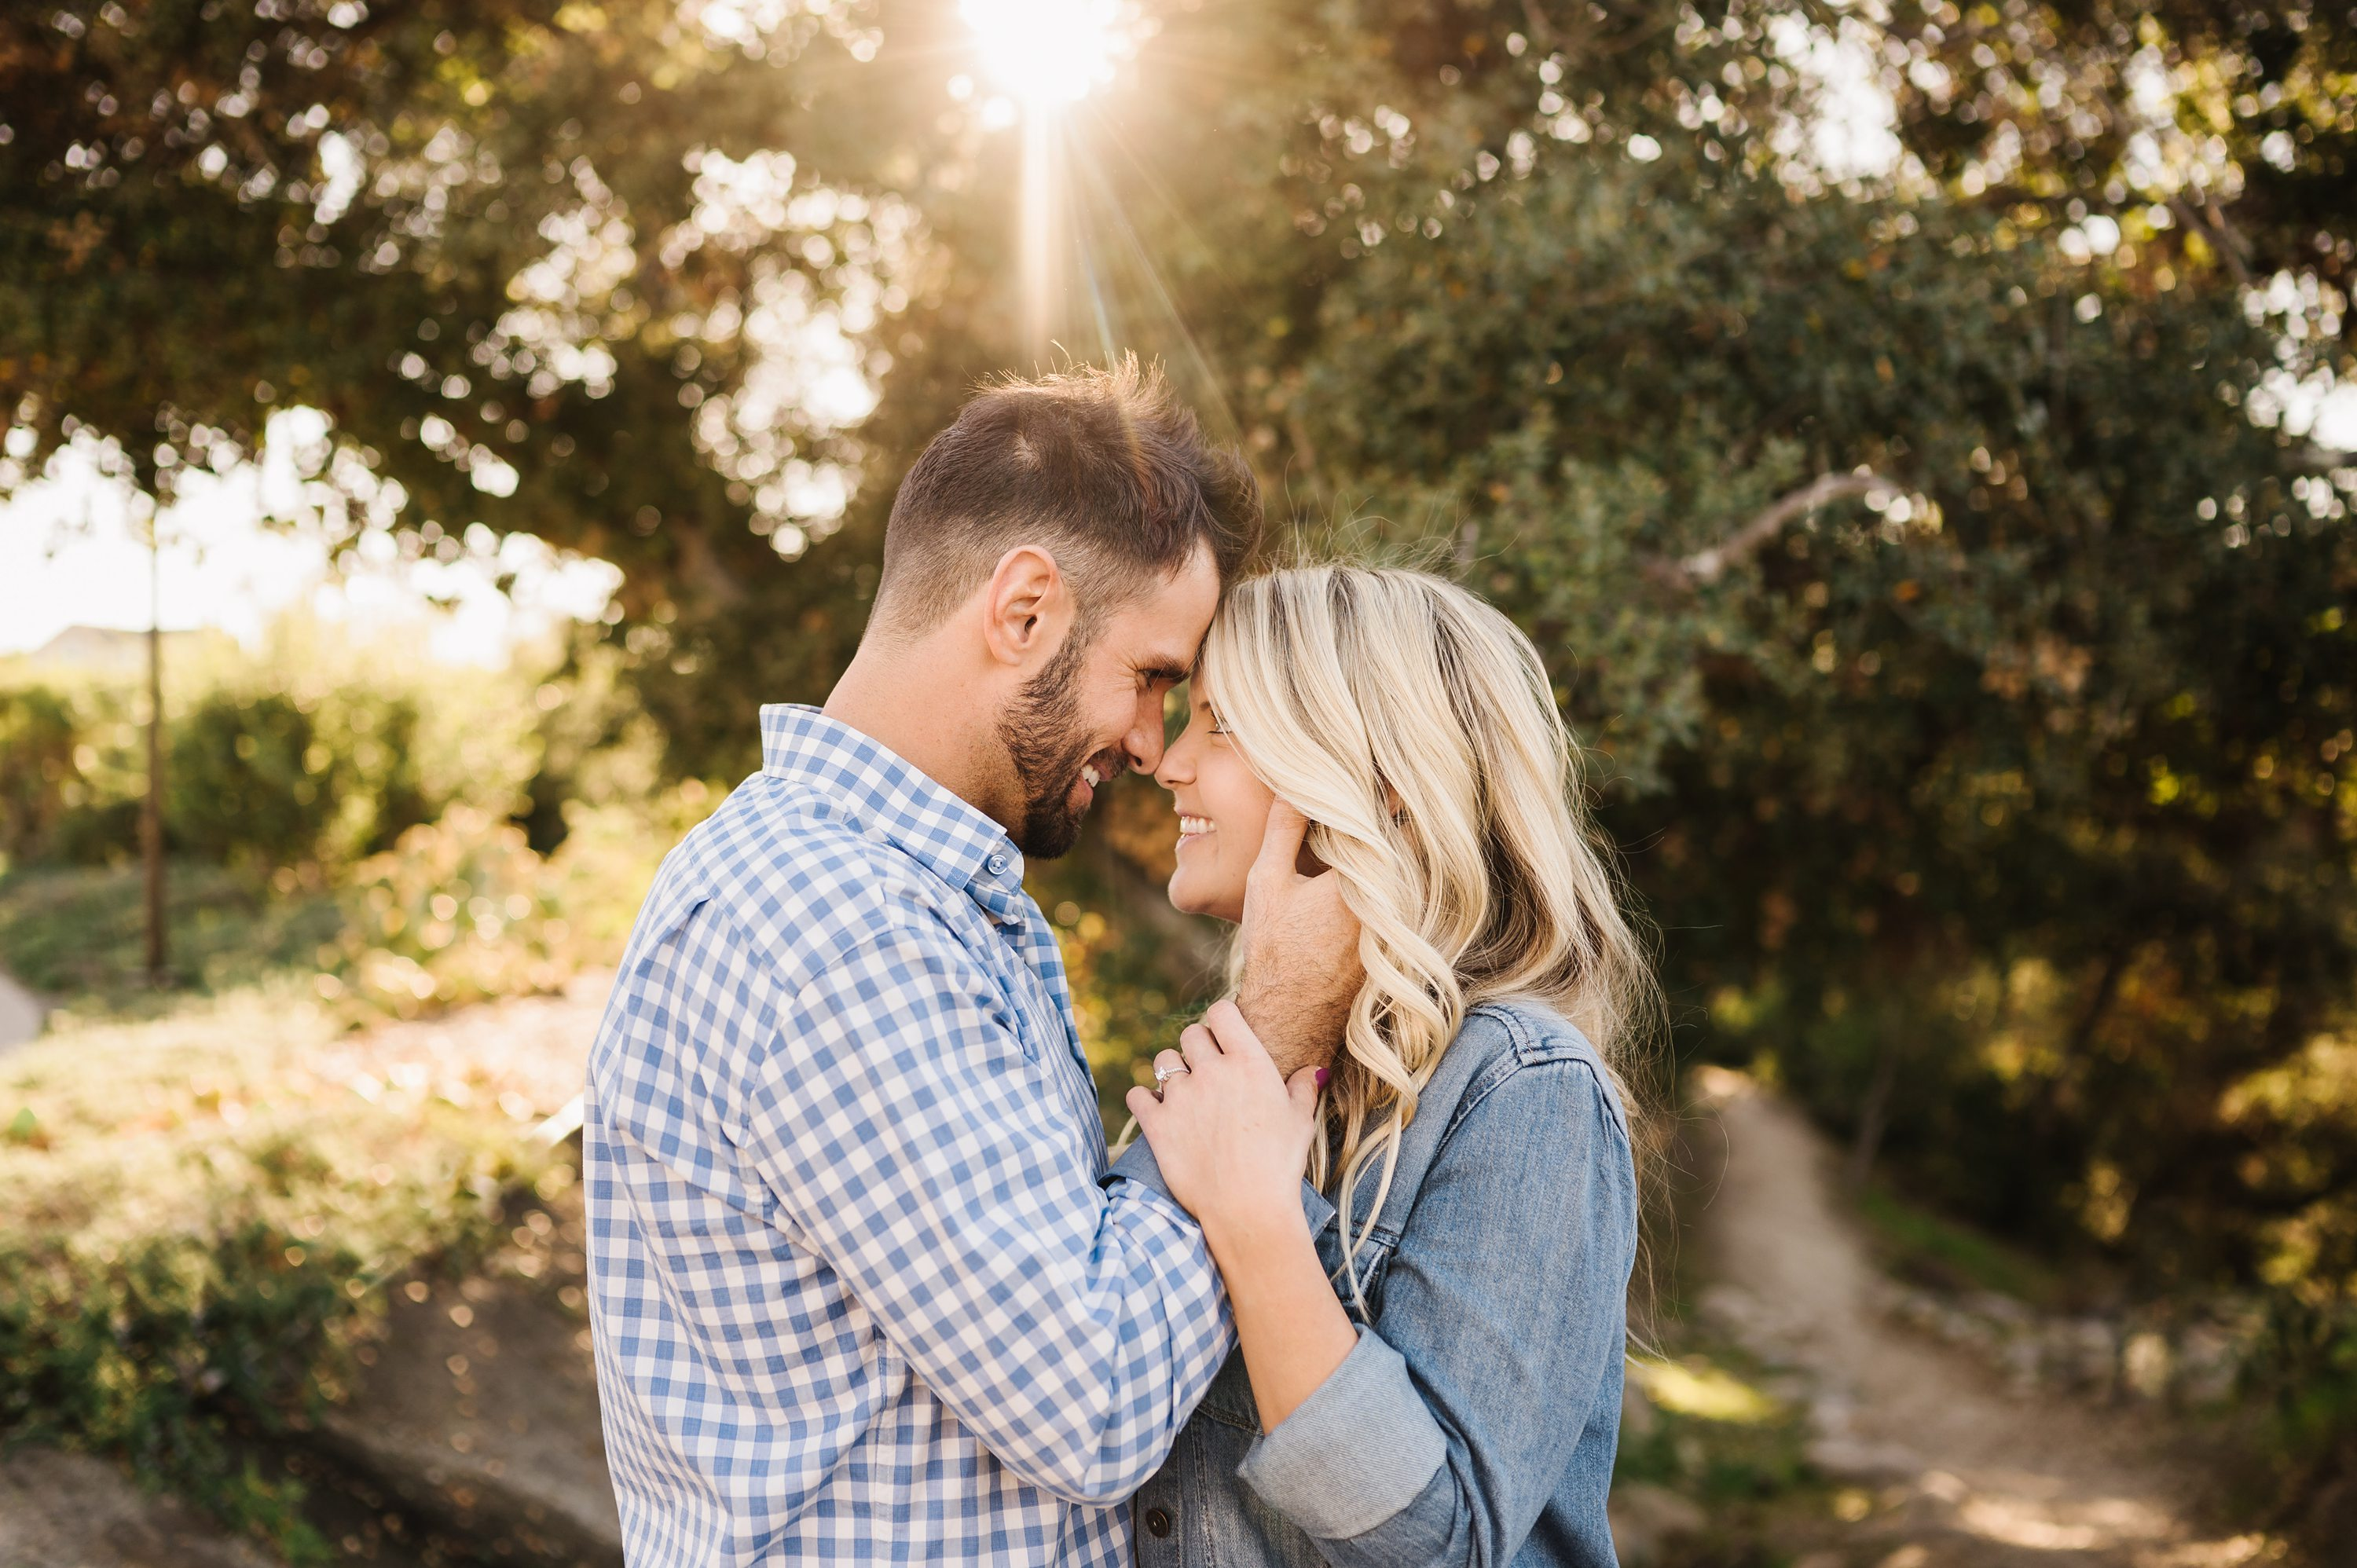 ladera ranch engagement photographer,Ladera ranch wedding photographer